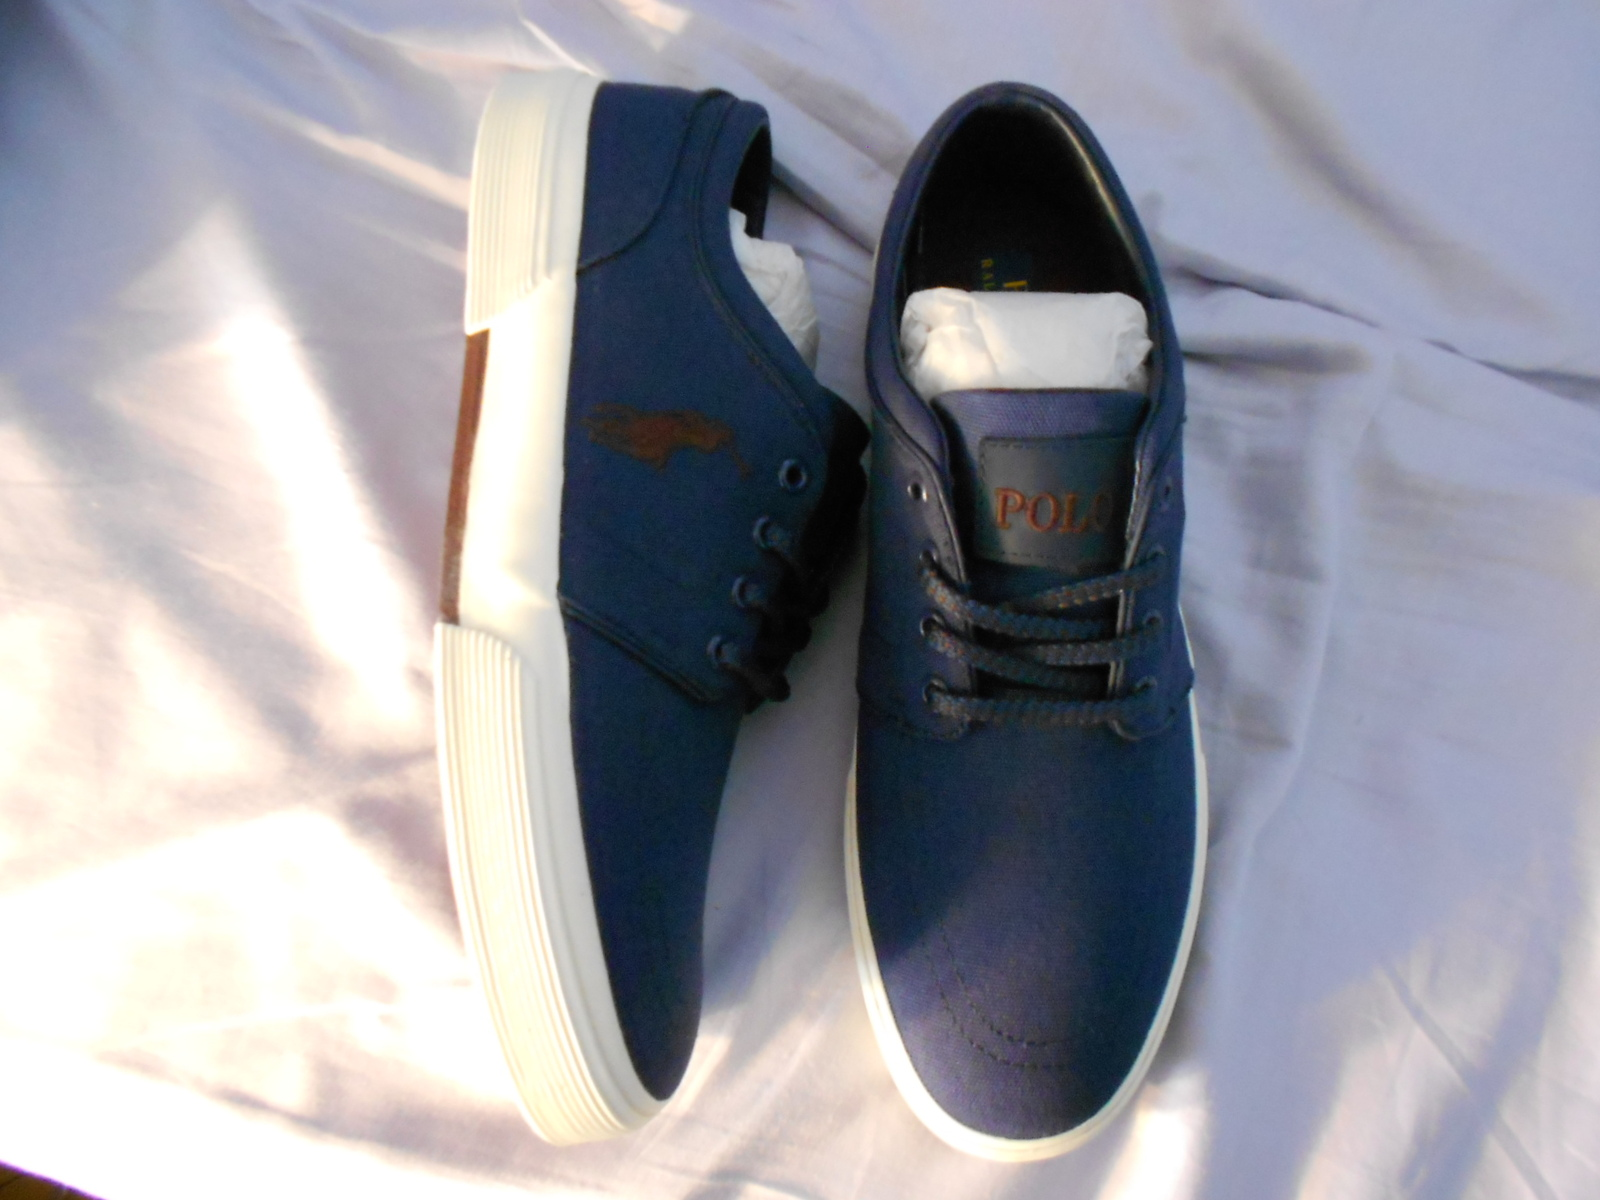 Ralph Lauren POLO Navy Canvas Sneakers(Faxon)   Size: 11.5D  New in box